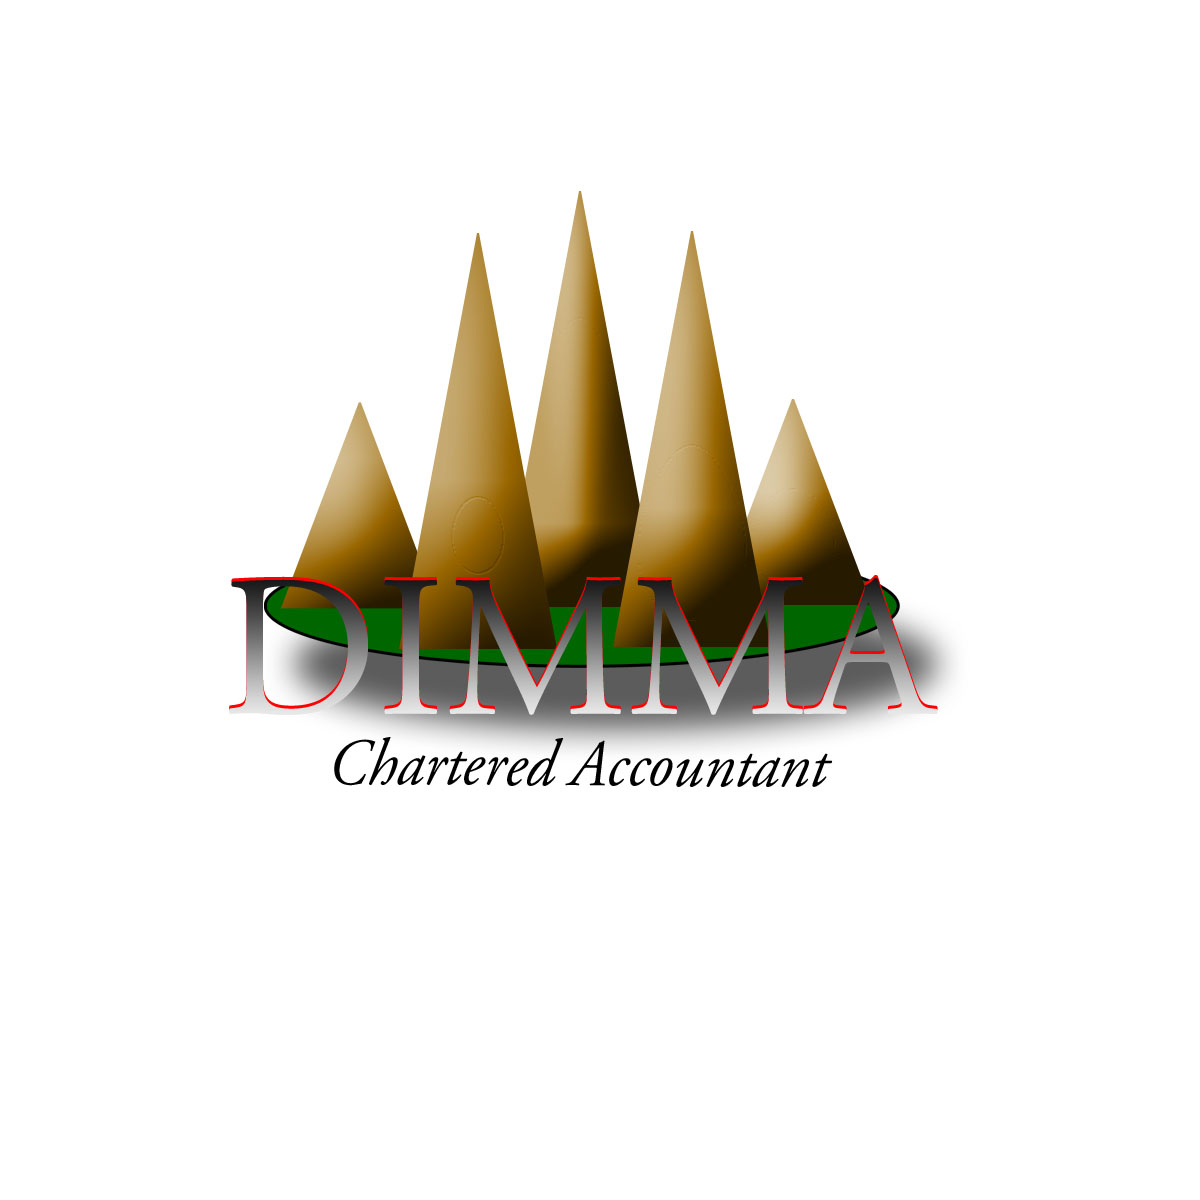 Logo Design by Moag - Entry No. 112 in the Logo Design Contest Creative Logo Design for Dimma Chartered Accountant.